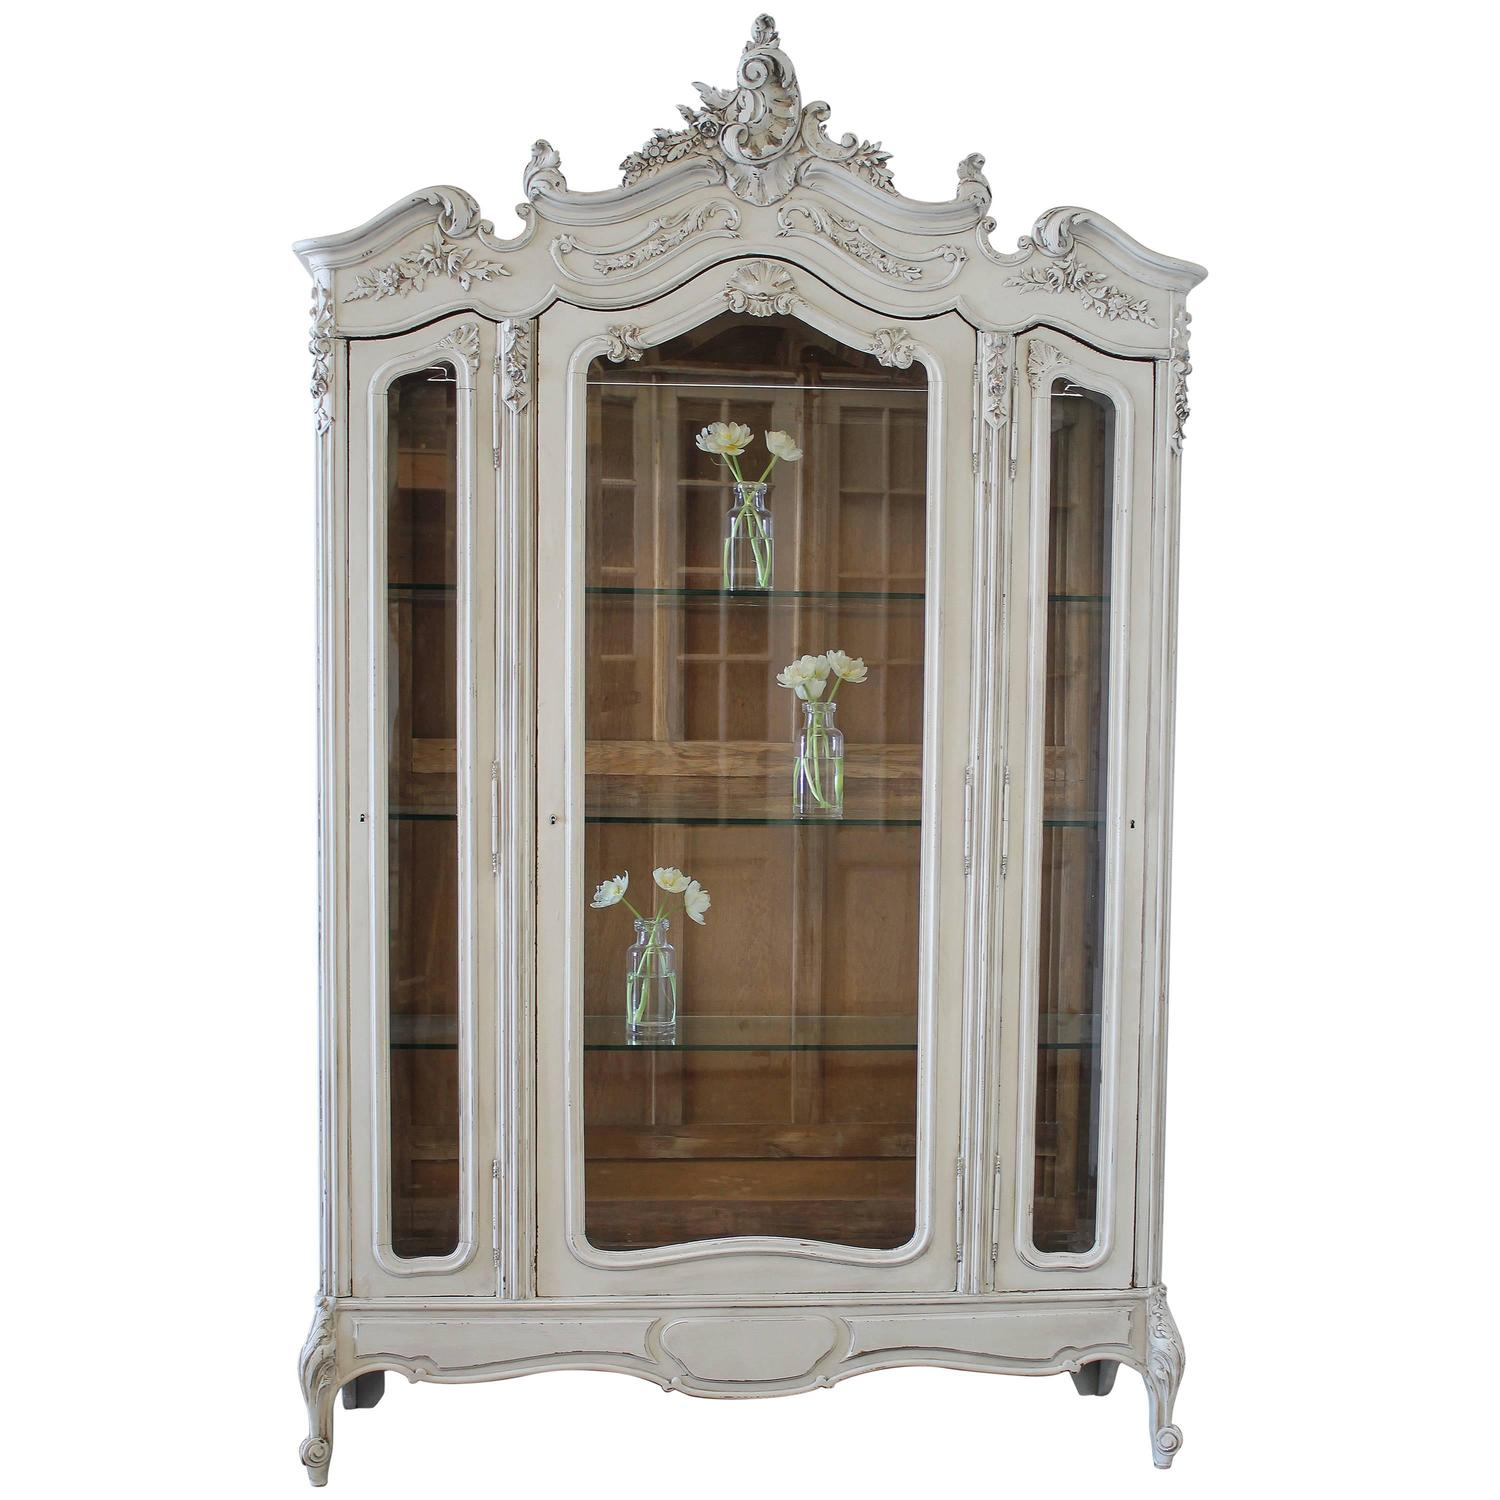 19th century louis xv style painted french curio display. Black Bedroom Furniture Sets. Home Design Ideas